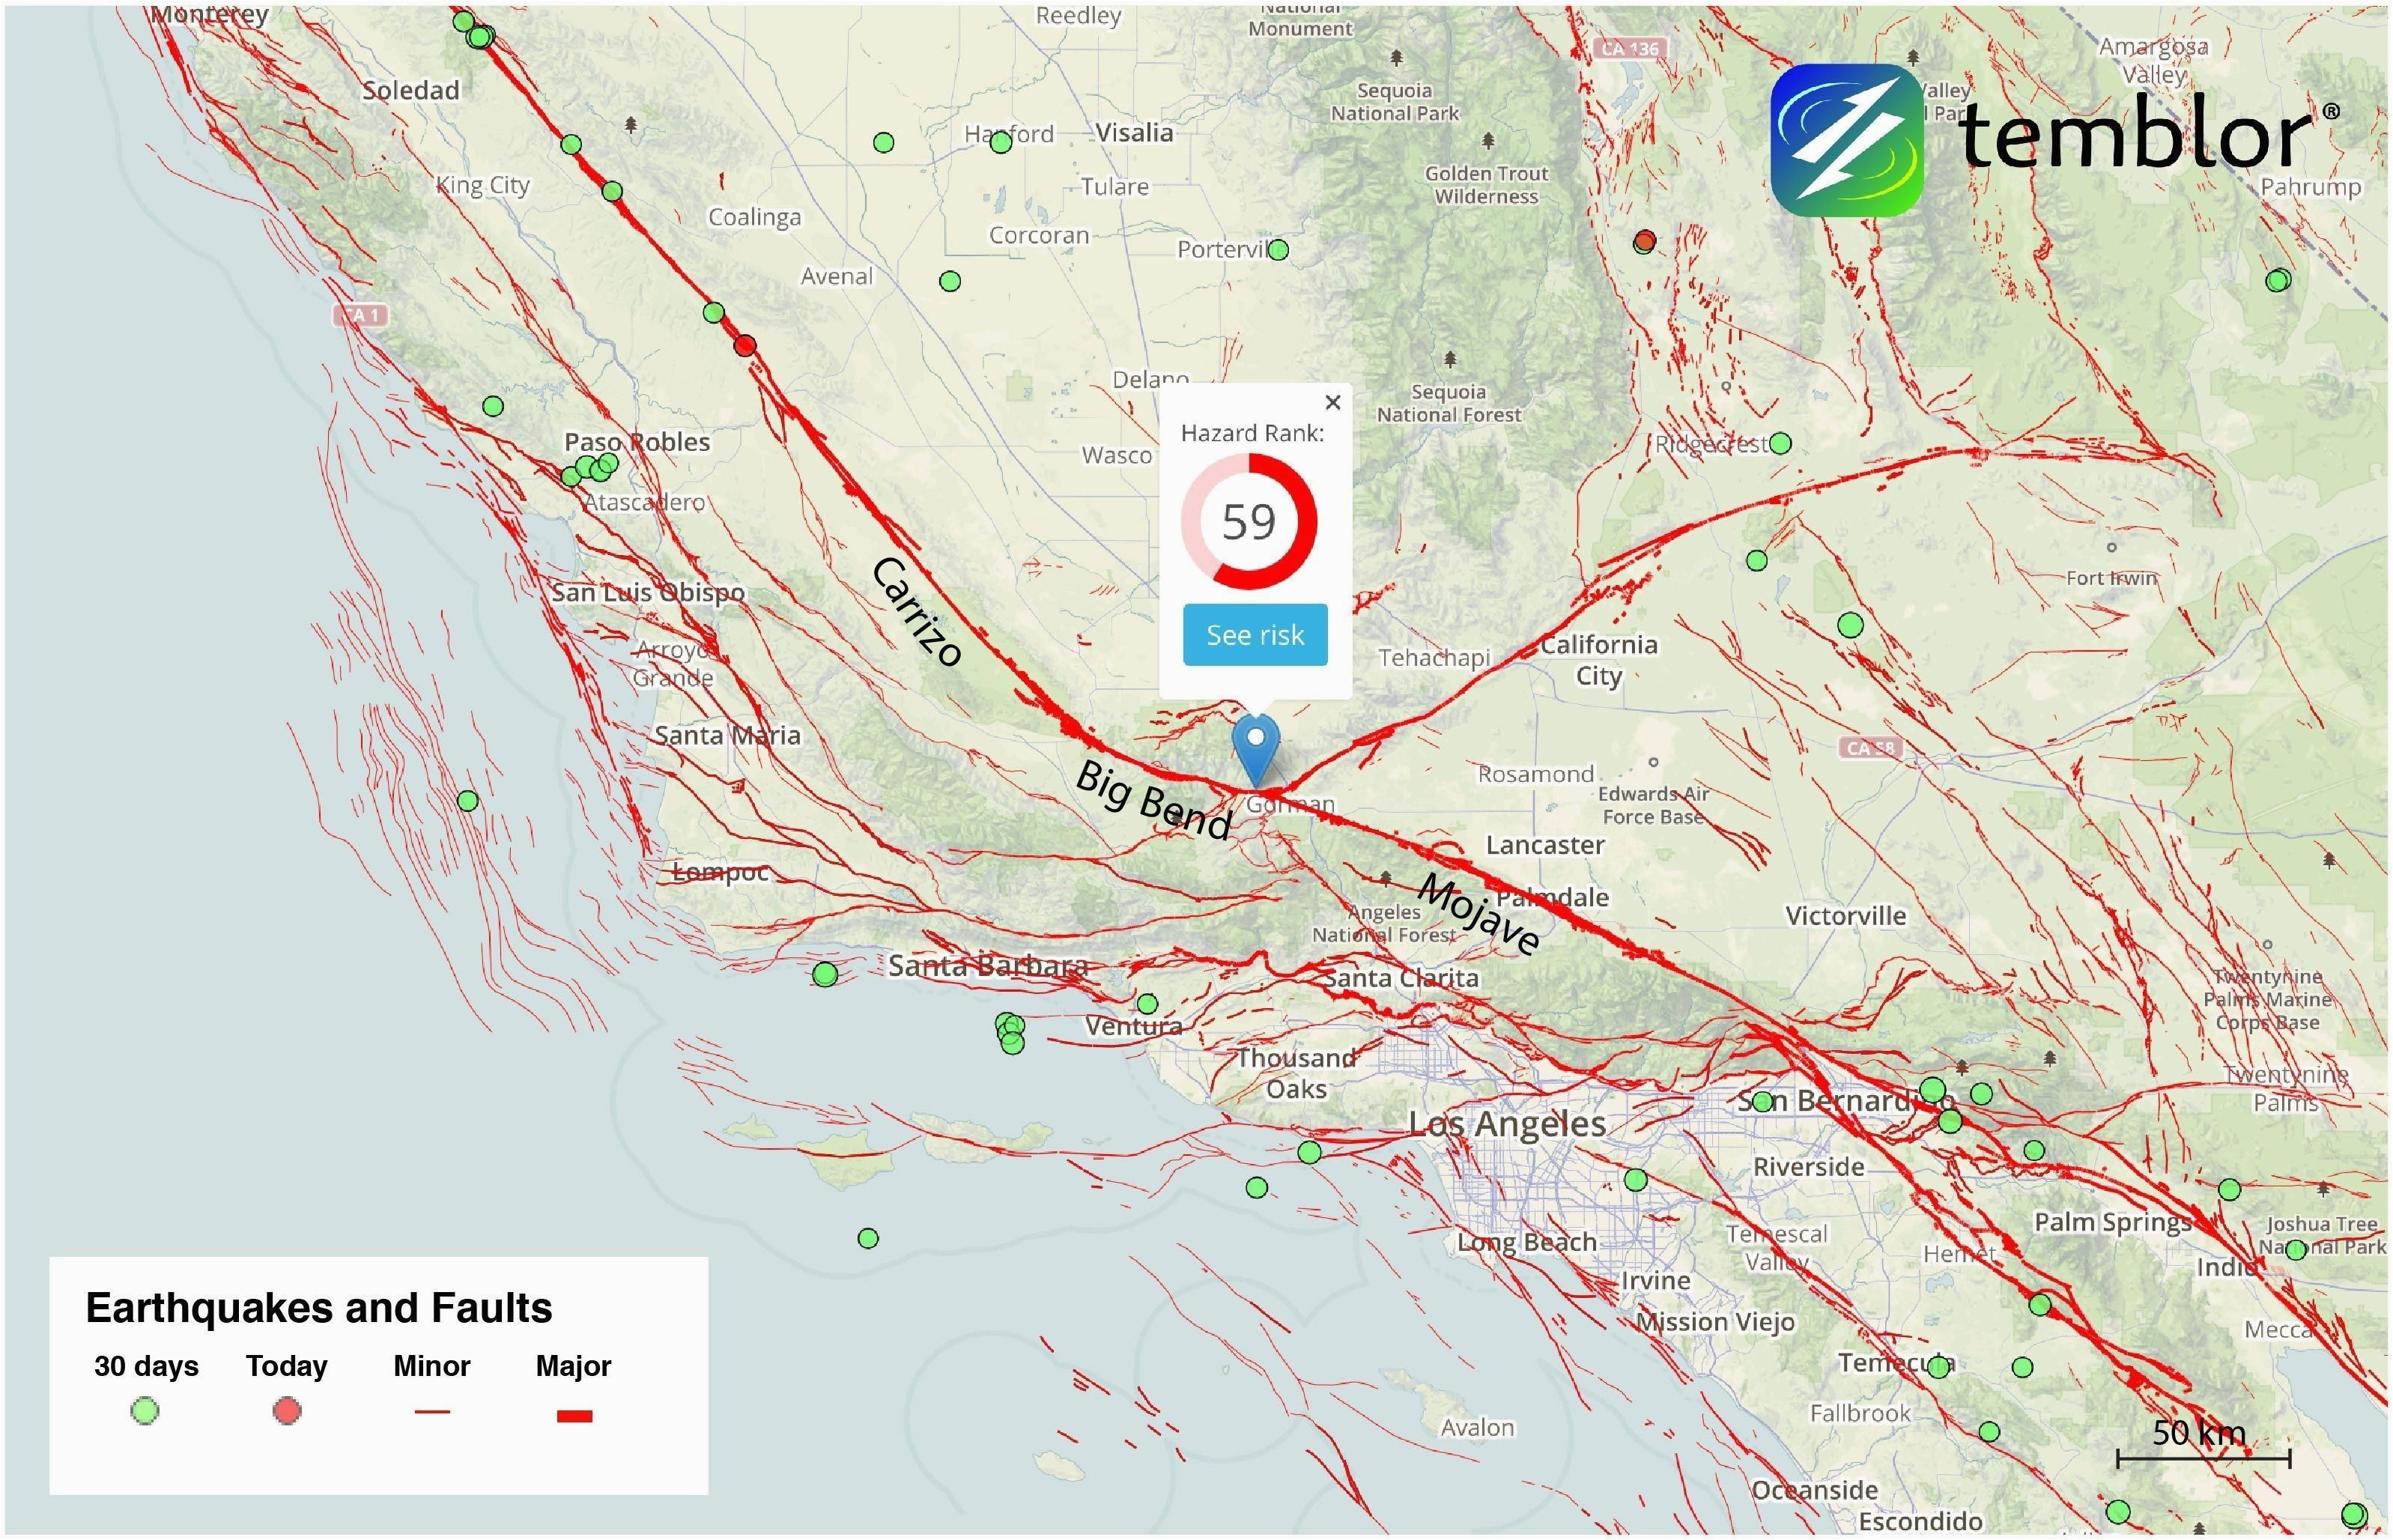 California Seismic Zone Map United States Fault Line Map ...